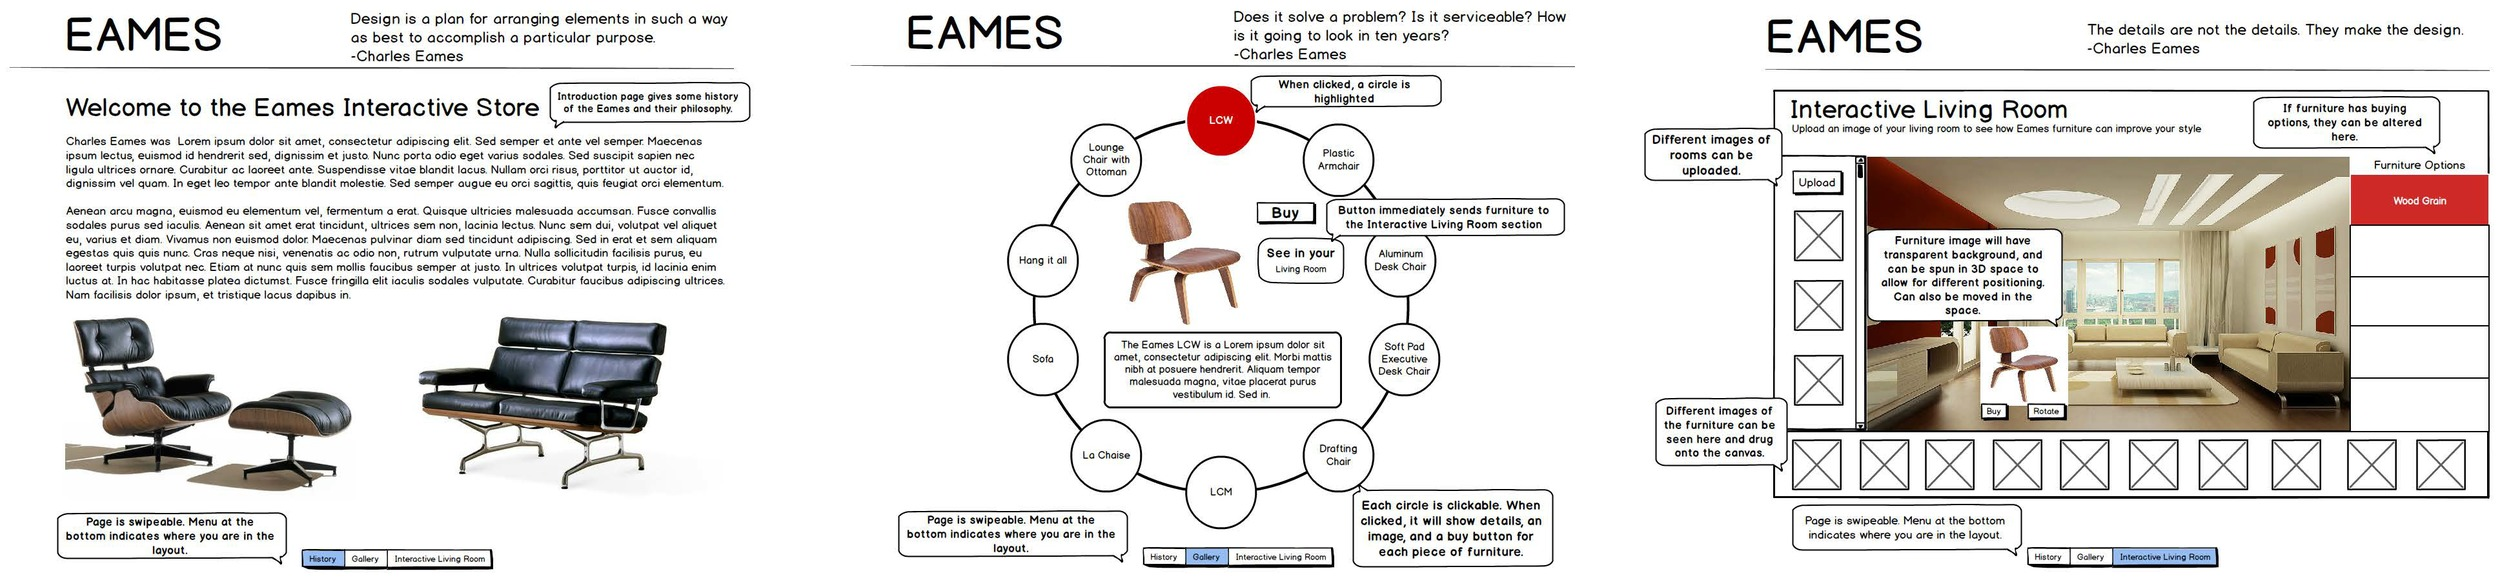 Eames furniture store wireframe. This image gives a tour of the various site pages.